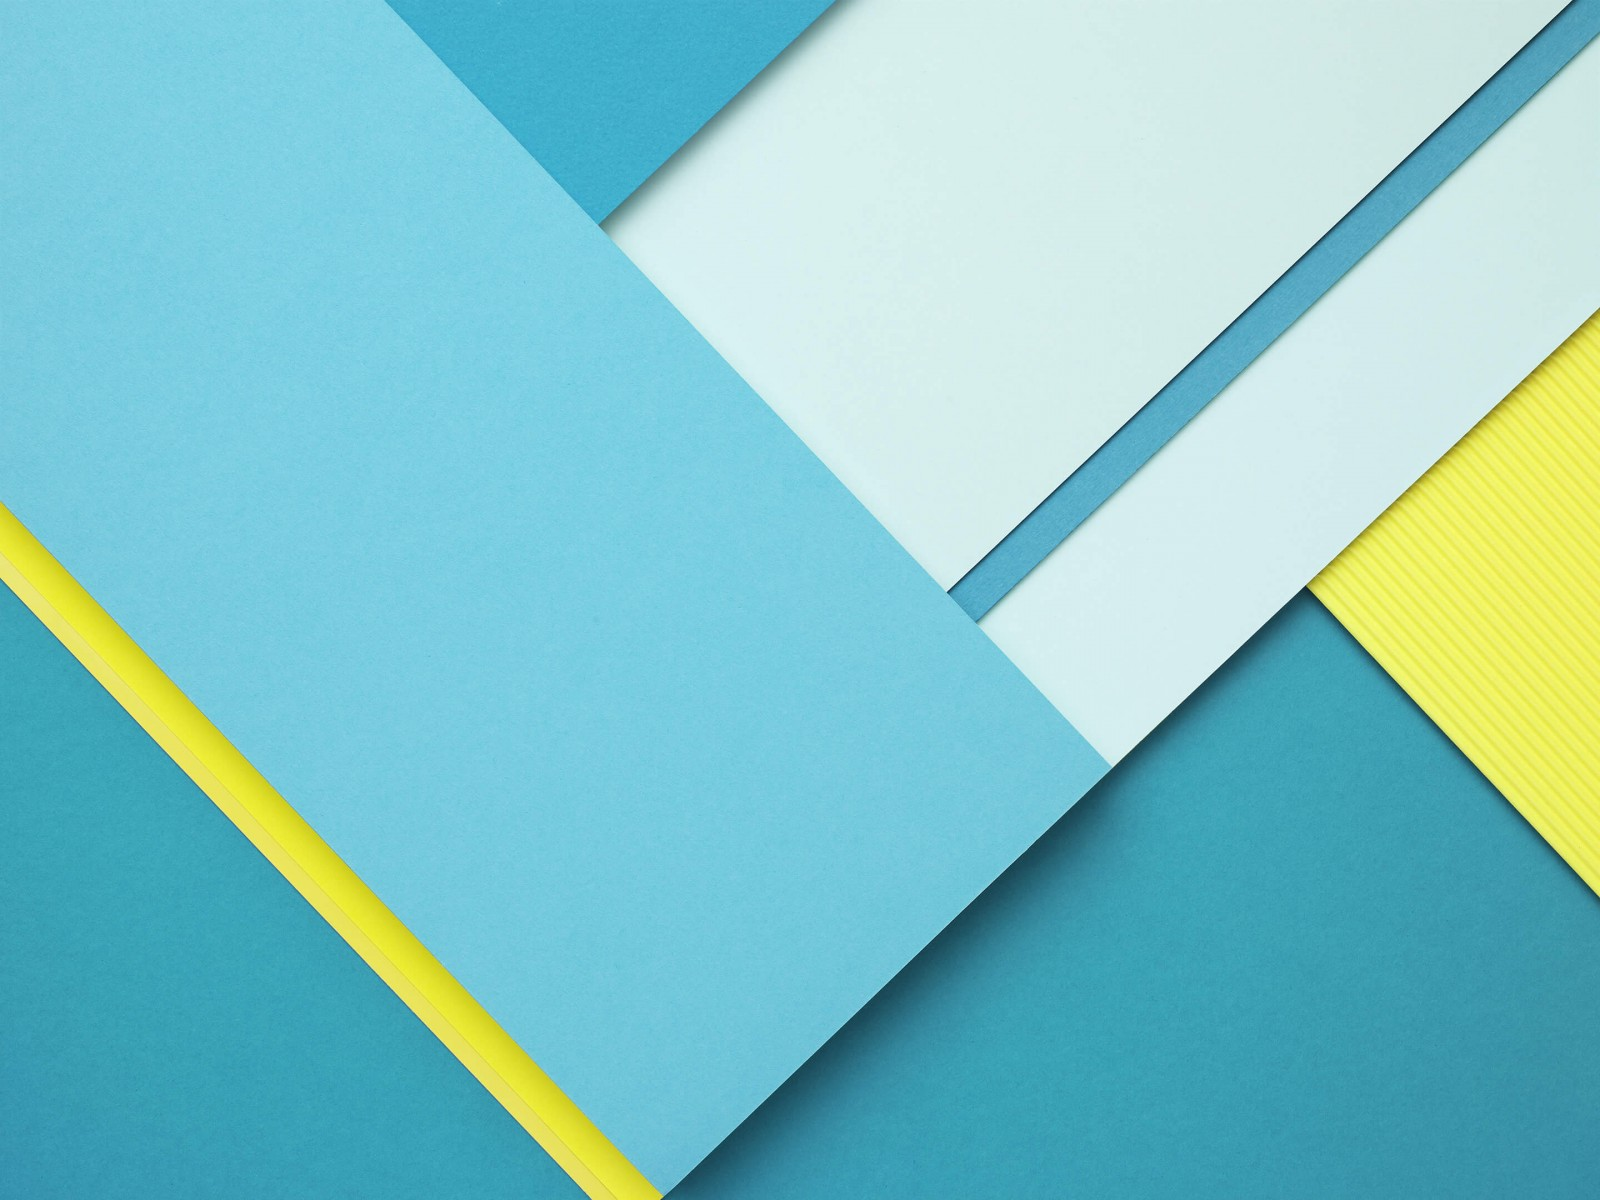 Google Material Design HD wallpaper for 1600 x 1200   HDwallpapersnet 1600x1200